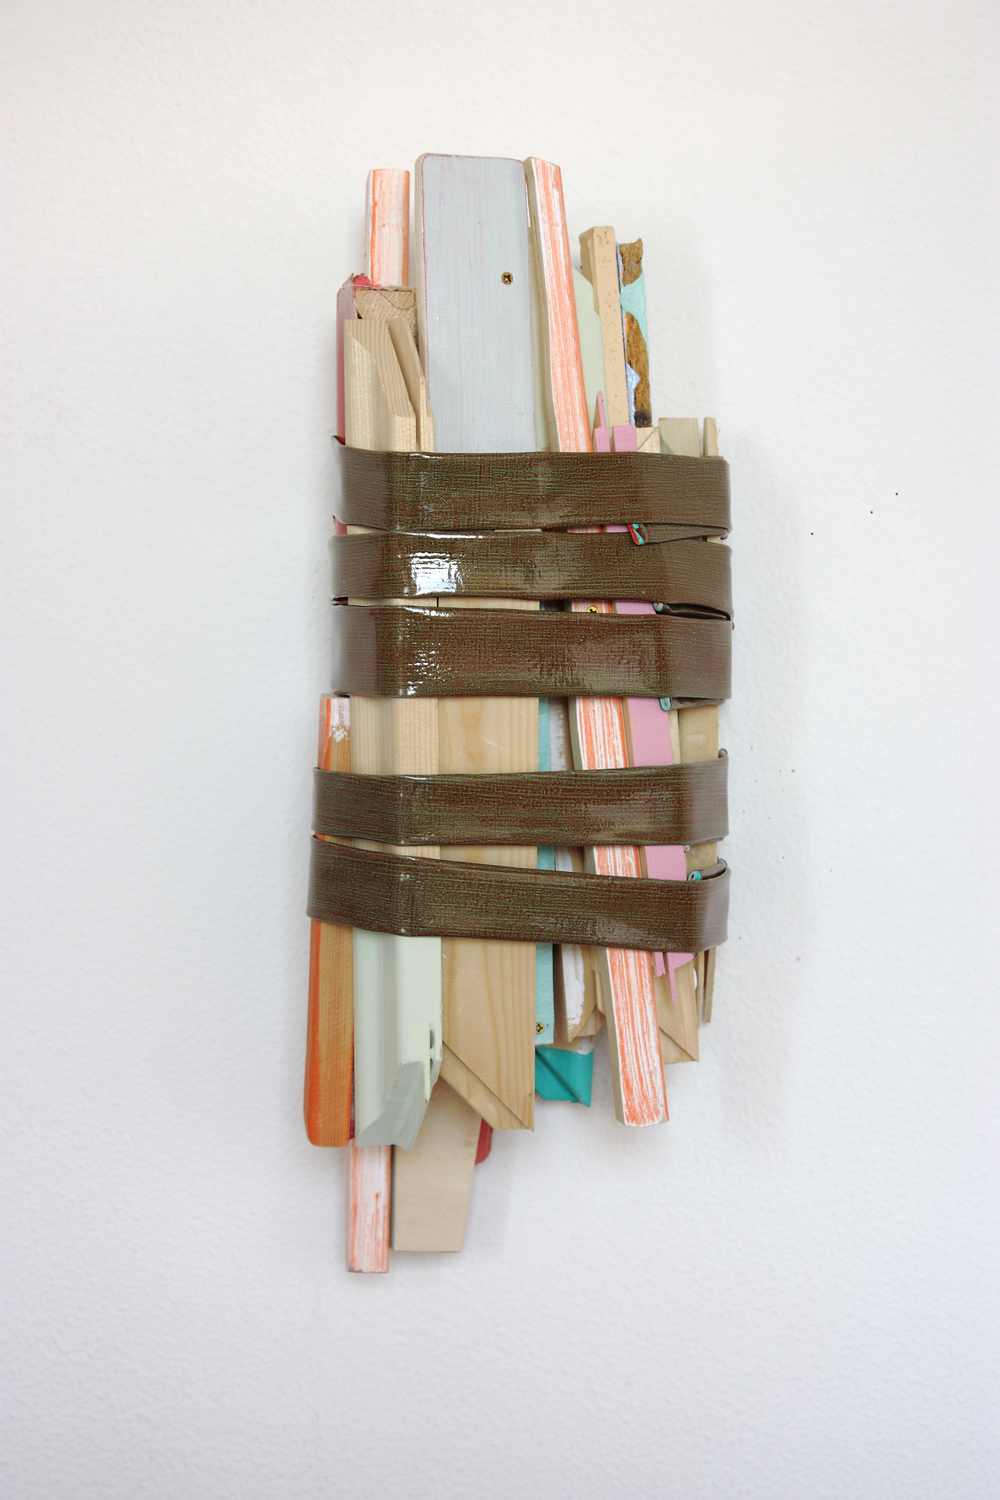 LOT (Nº9), 2010, trials and leftovers of several painting attached with canvas, 59 x 27 x 18 cm